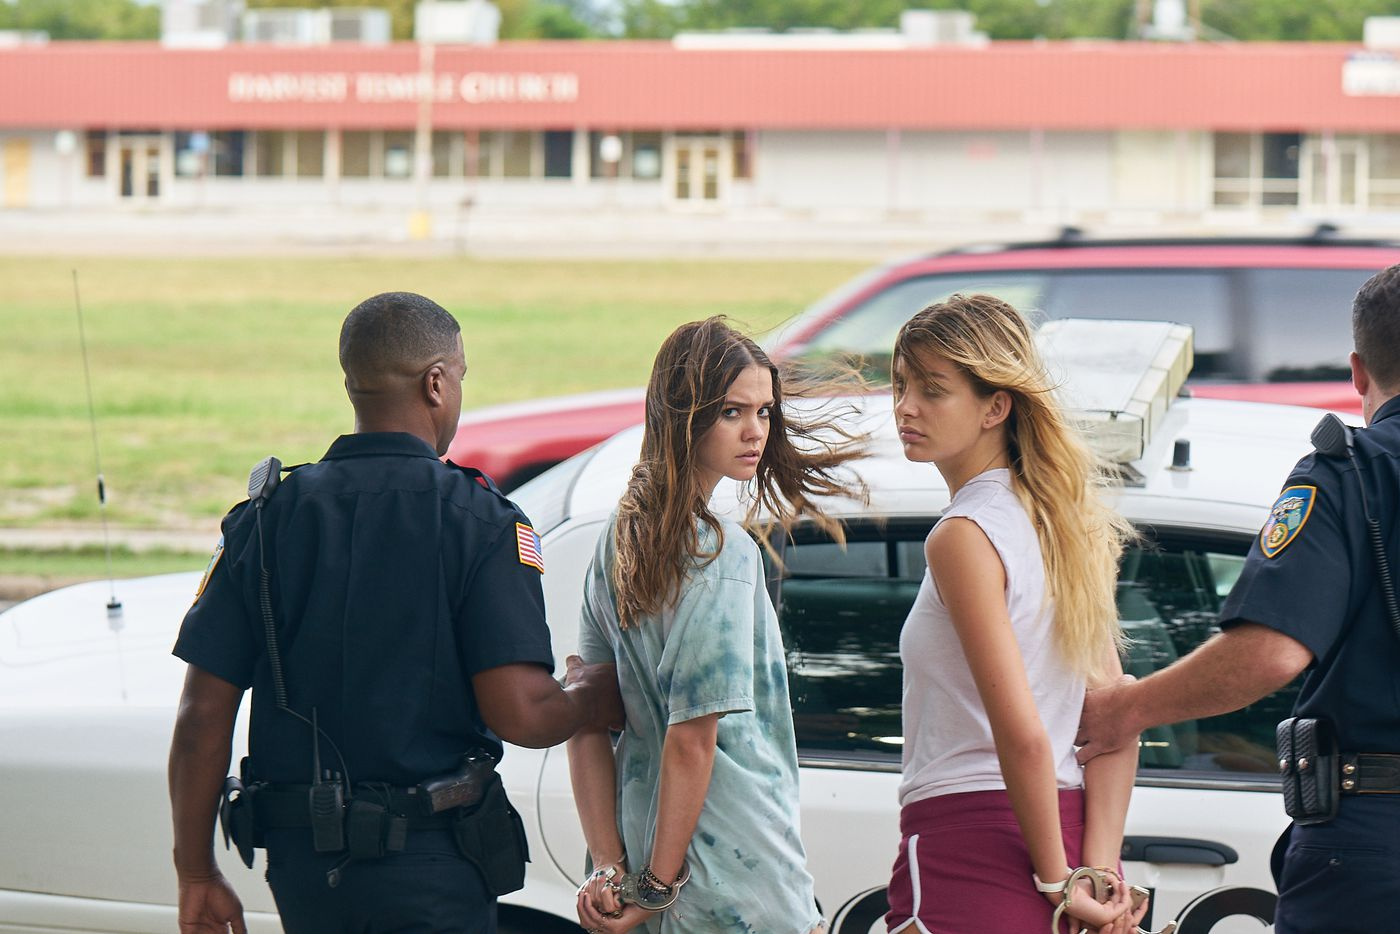 A scene from the film Never Goin' Back, written and directed by Dallas' Augustine Frizzell, starring Maia Mitchell (left) as Angela and Camila Morrone as Jessie.